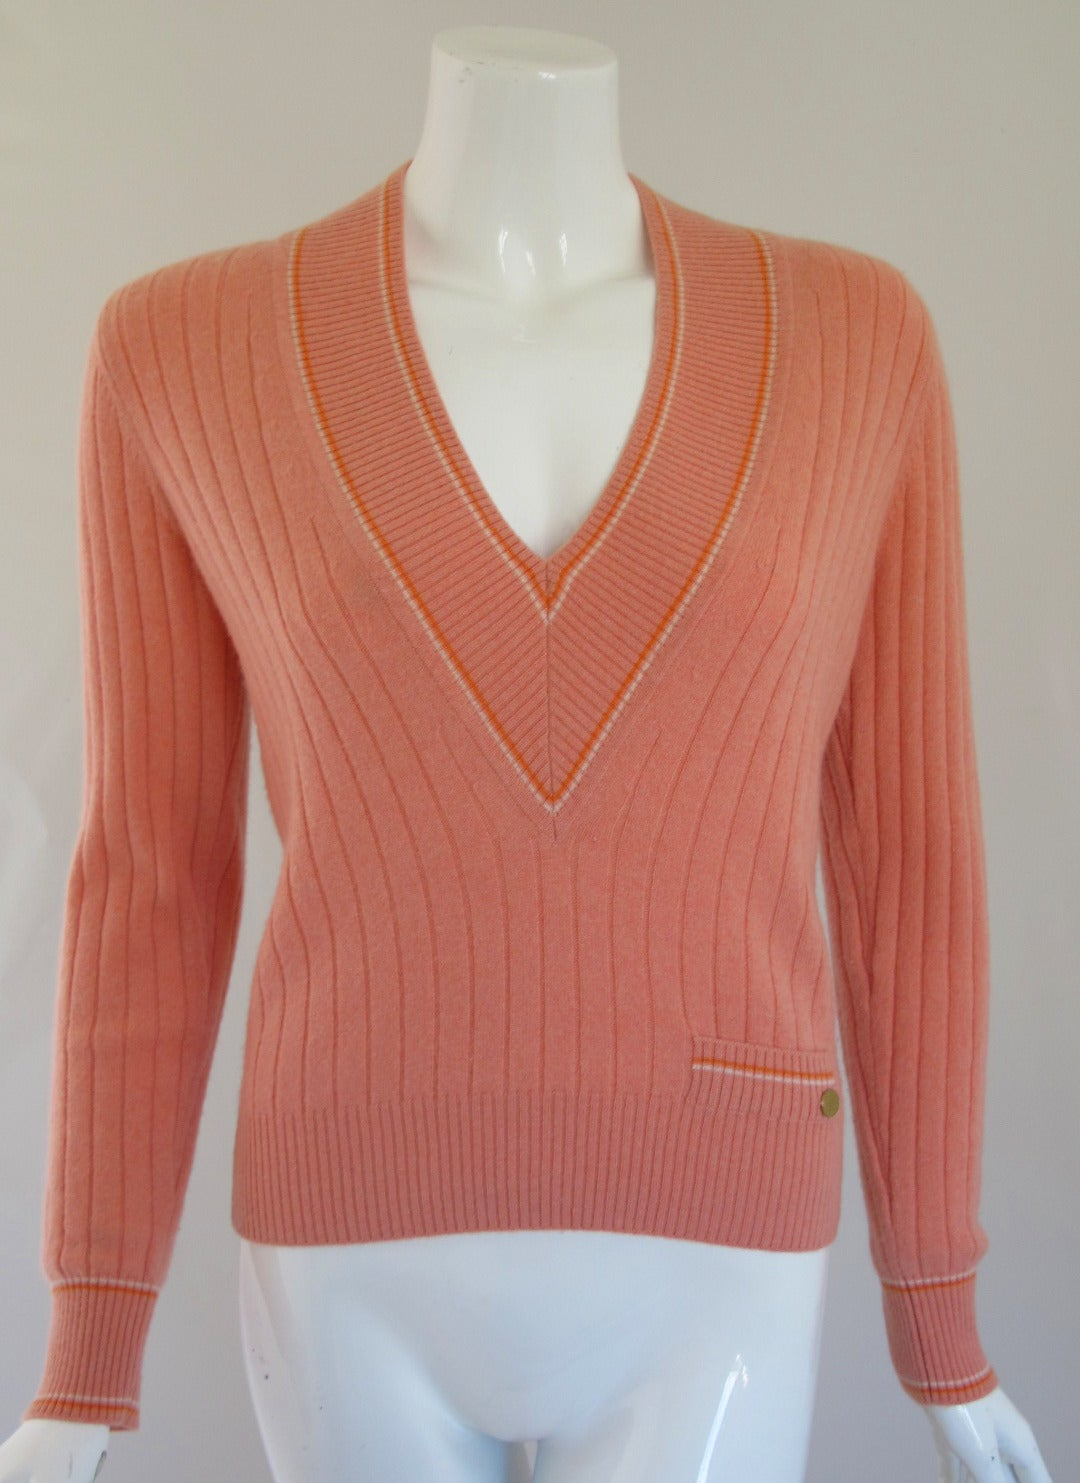 2001 Chanel 100% Cashmere Ribbed Tennis Sweater at 1stdibs